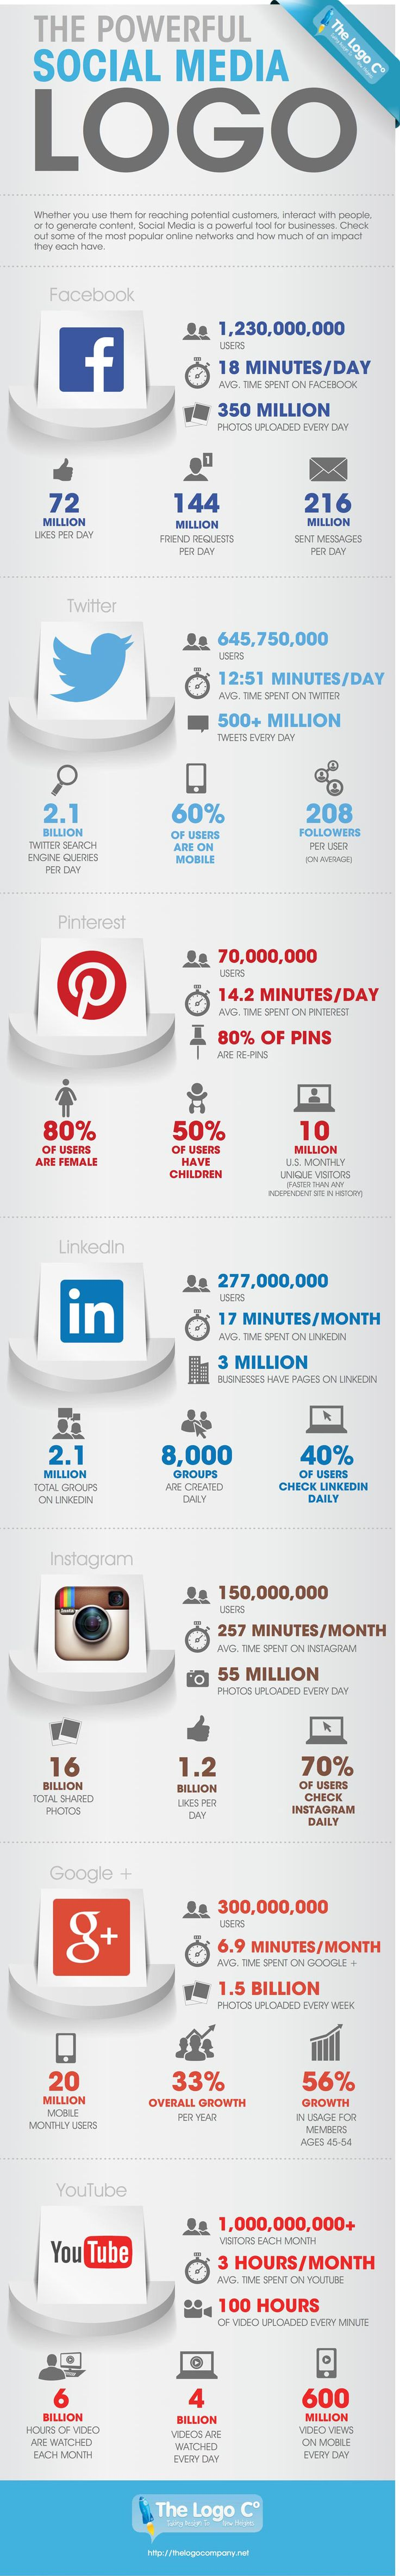 The powerful social media logo - #SocialMedia #SocialNetworks #Infographic